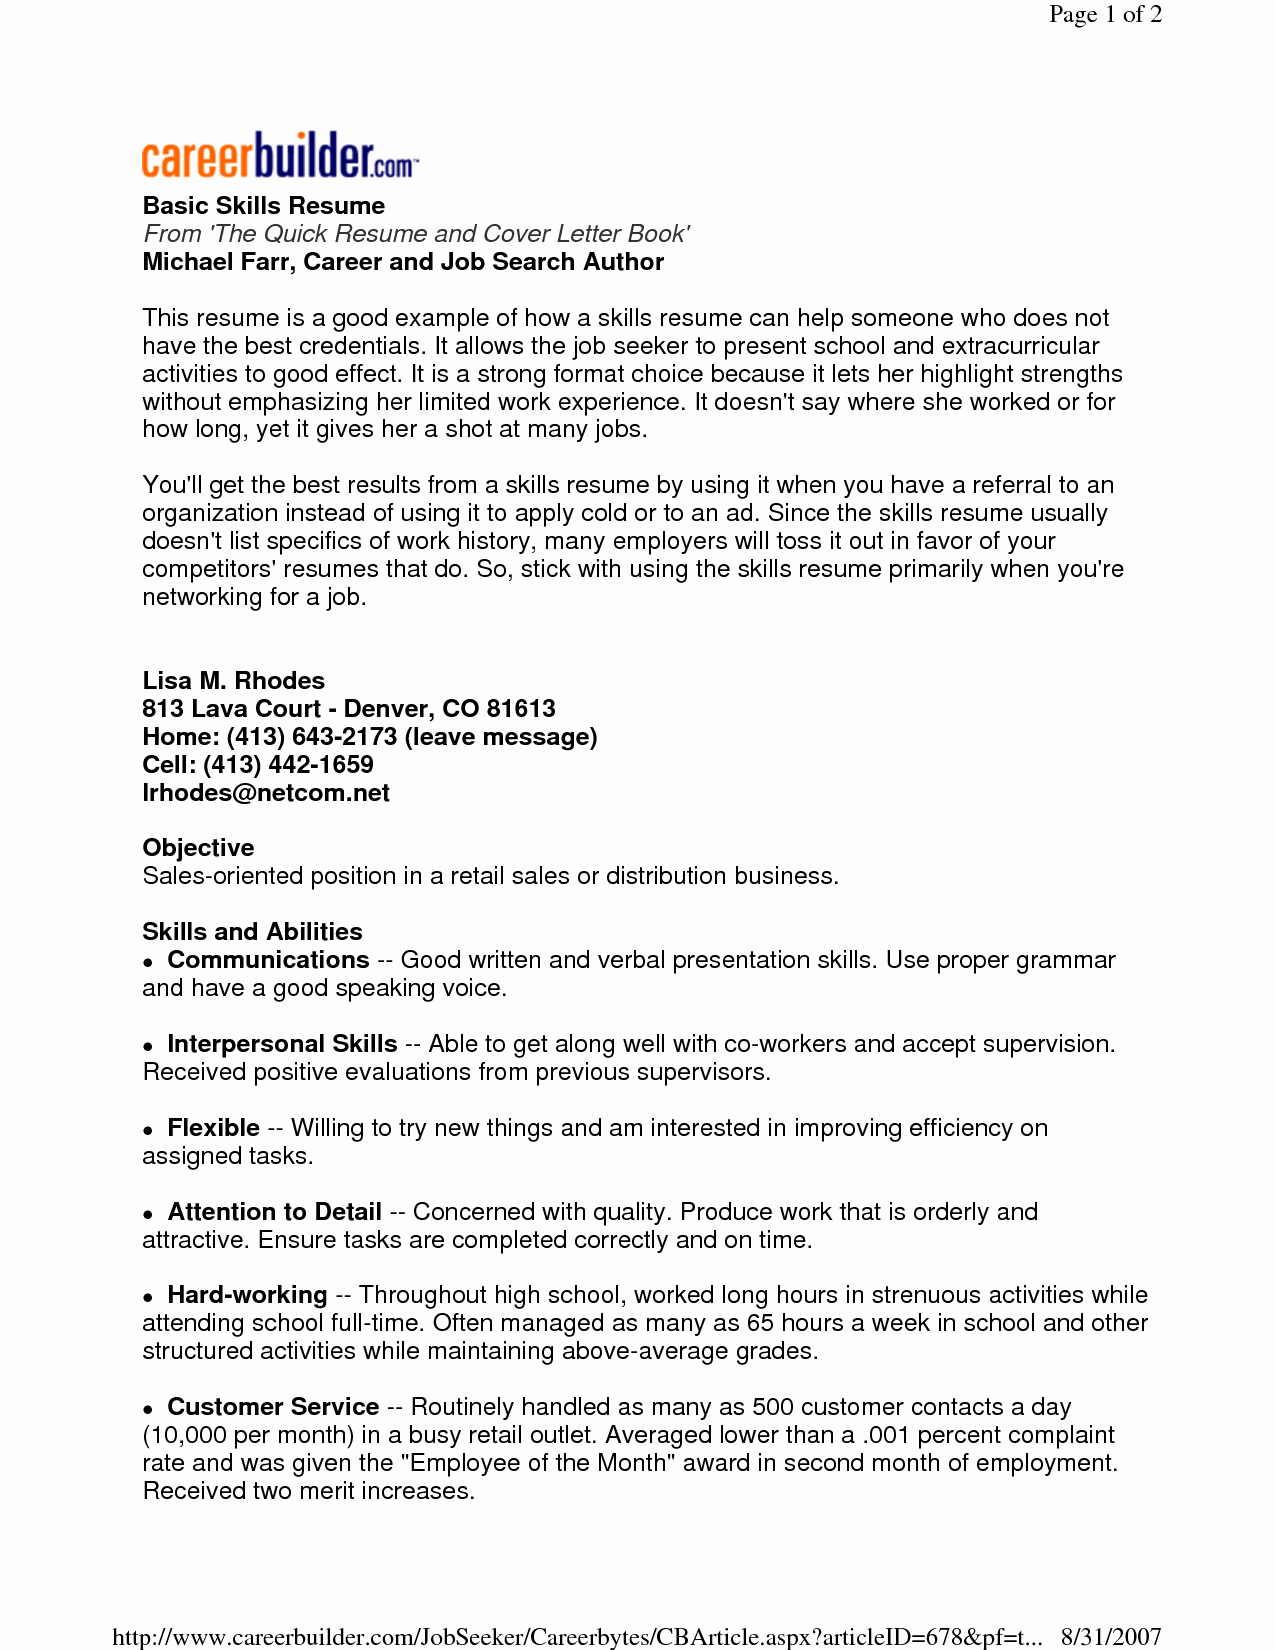 Simple Resume Examples for Jobs Elegant Find Here the Sample Resume that Best Fits Your Profile In